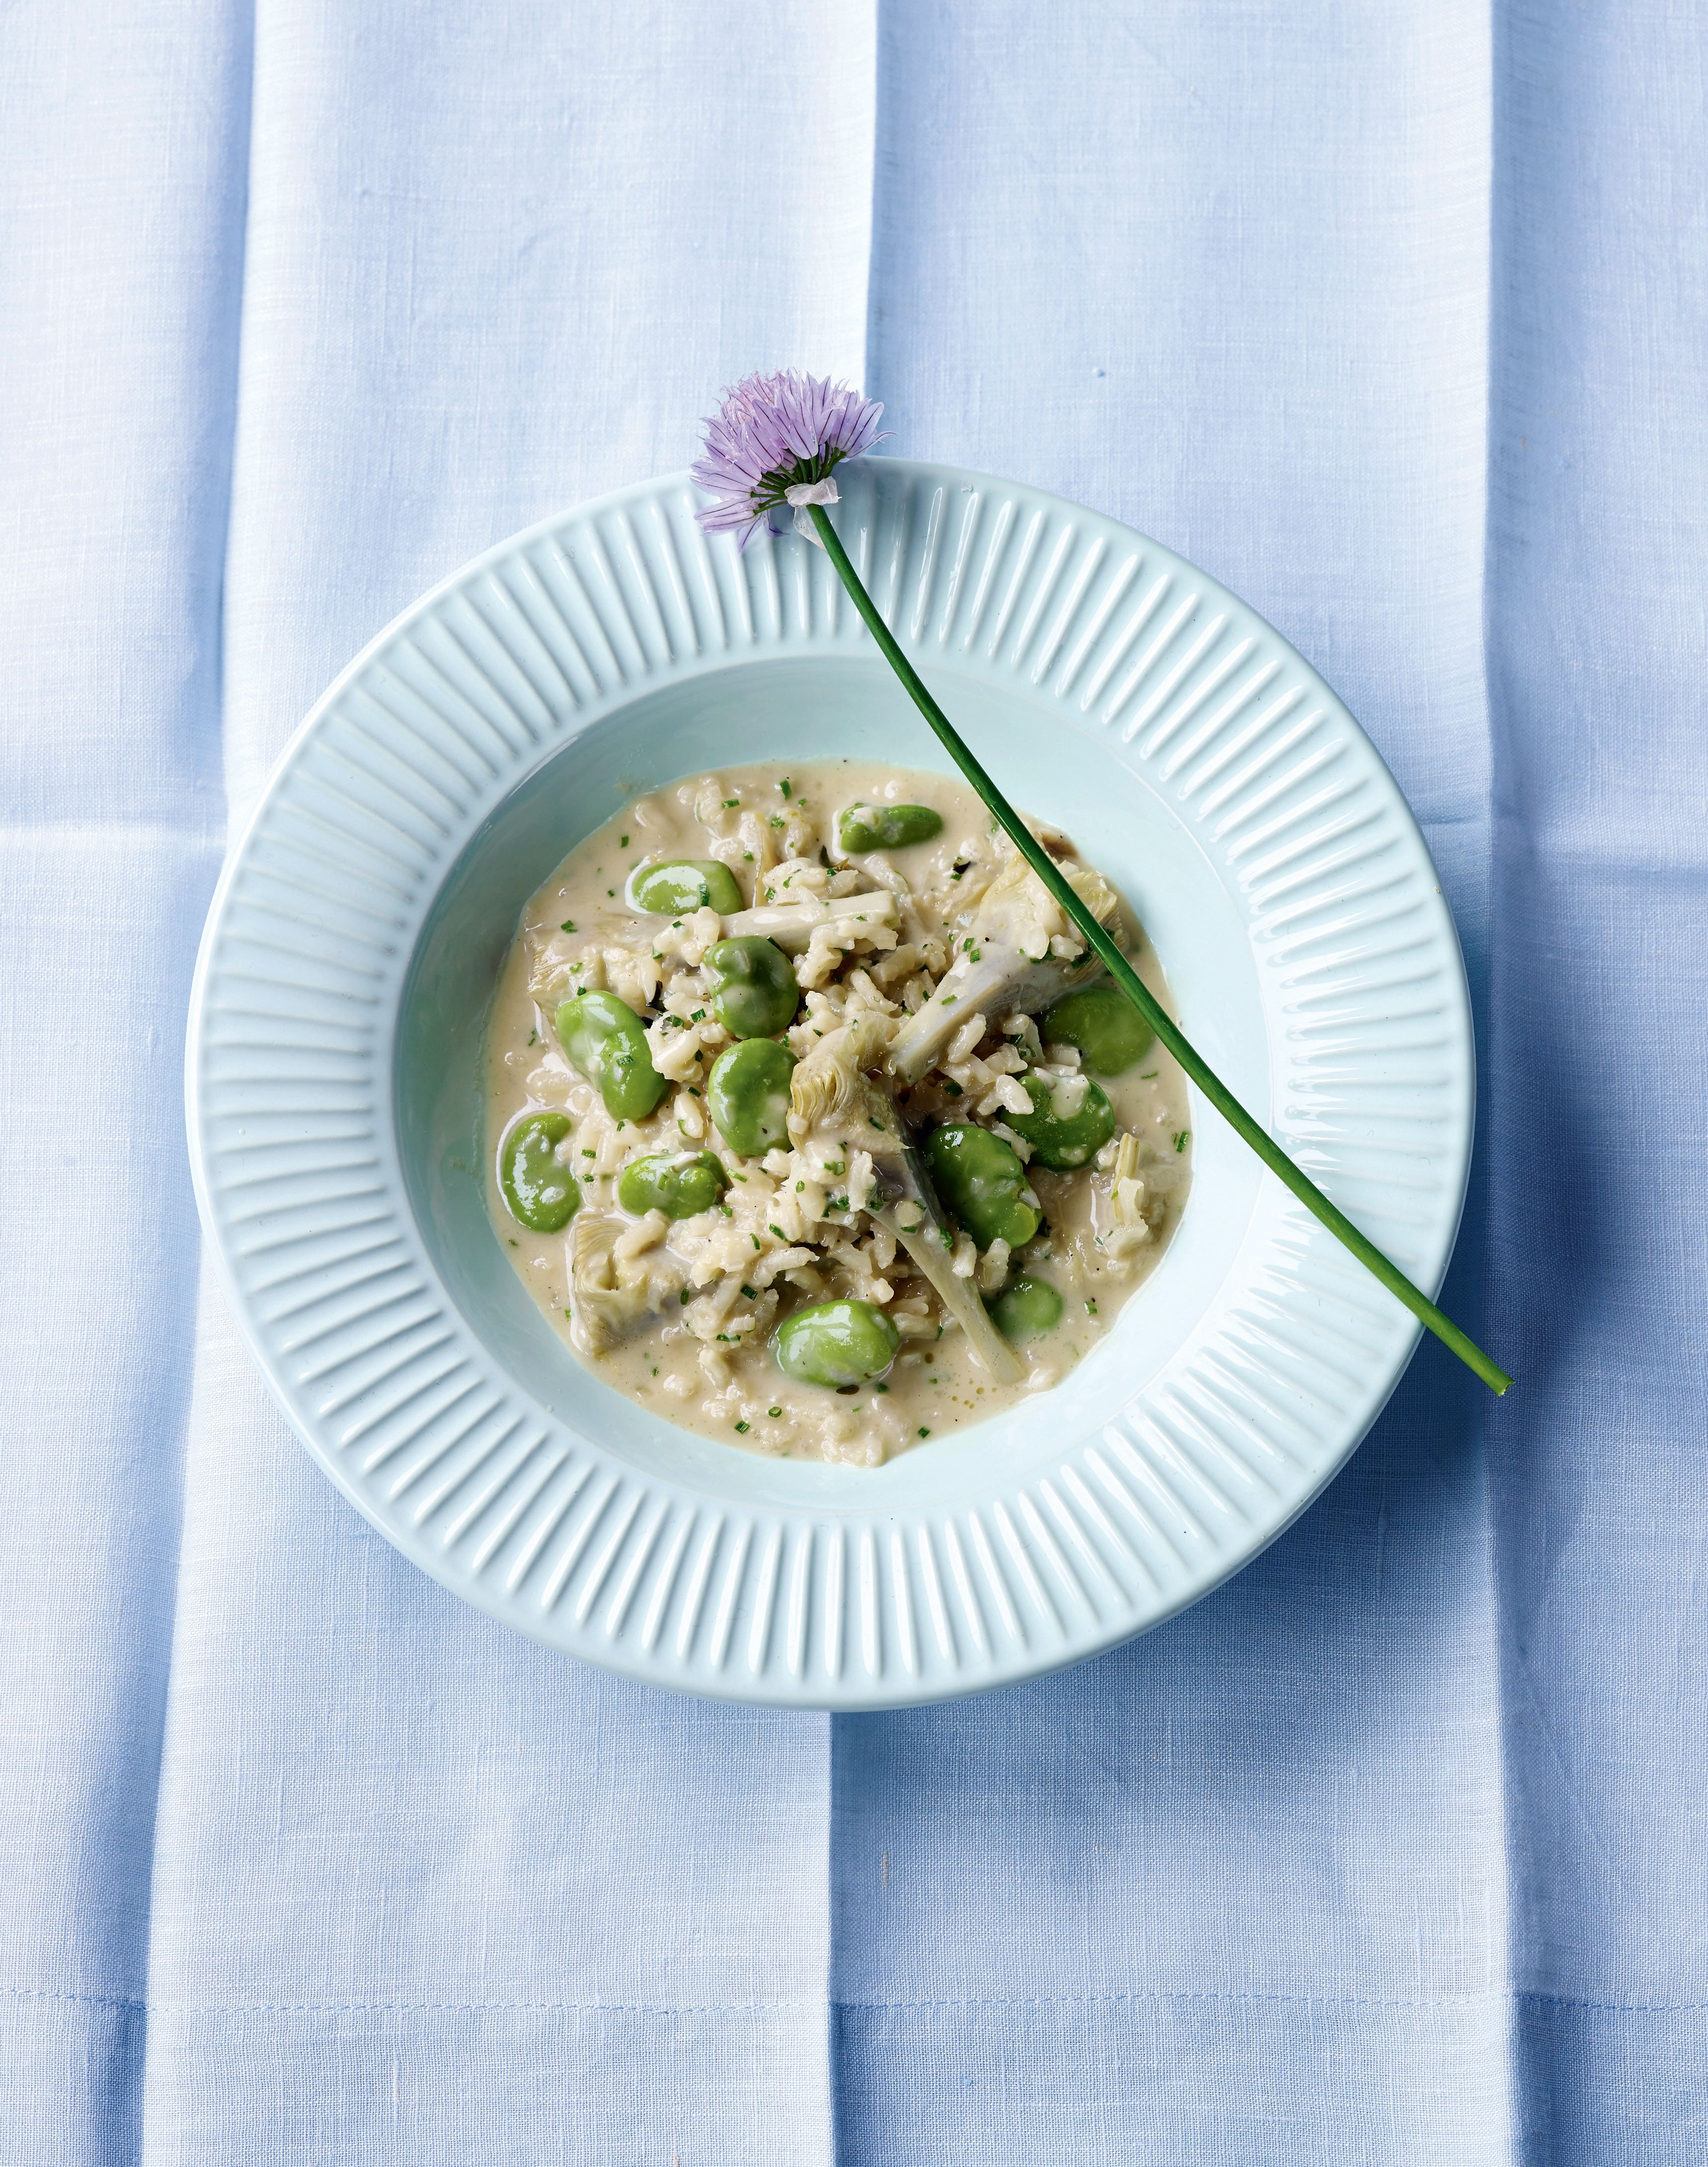 Artichoke and broad bean risotto